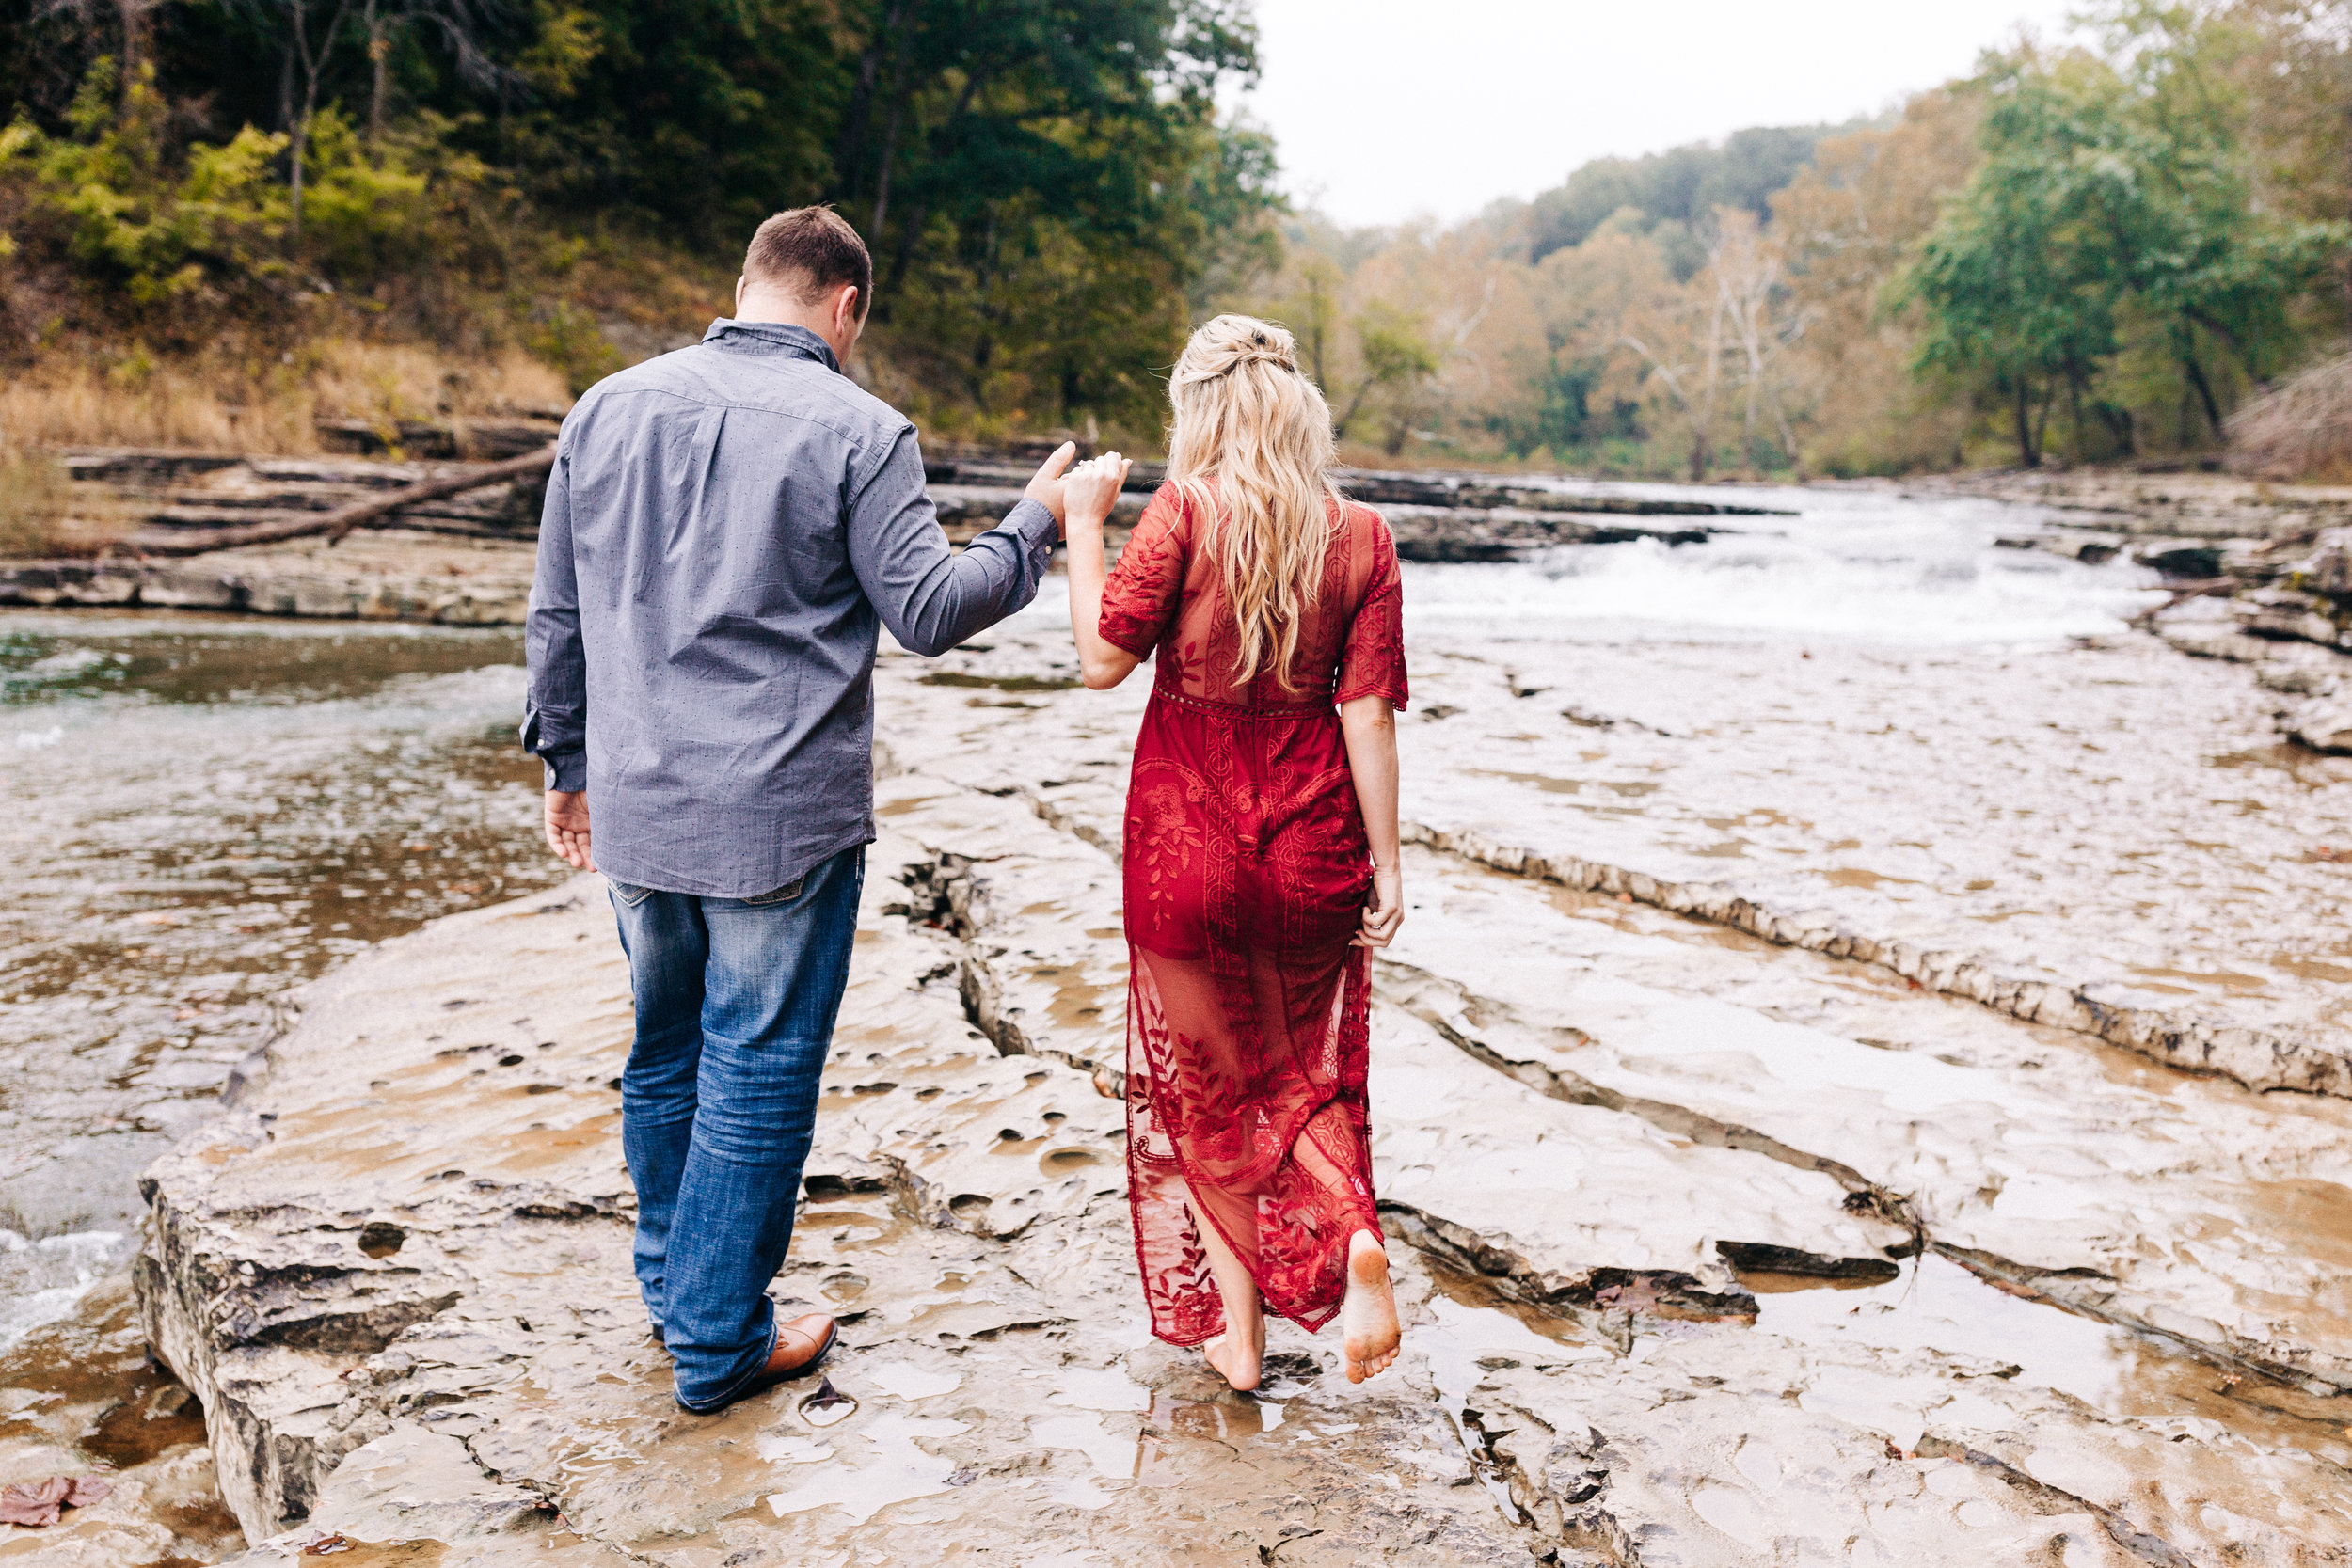 Dorothy_Louise_Photography_Alyssa_Drew_Indiana_Engagement_Cataract_Falls-183.jpg